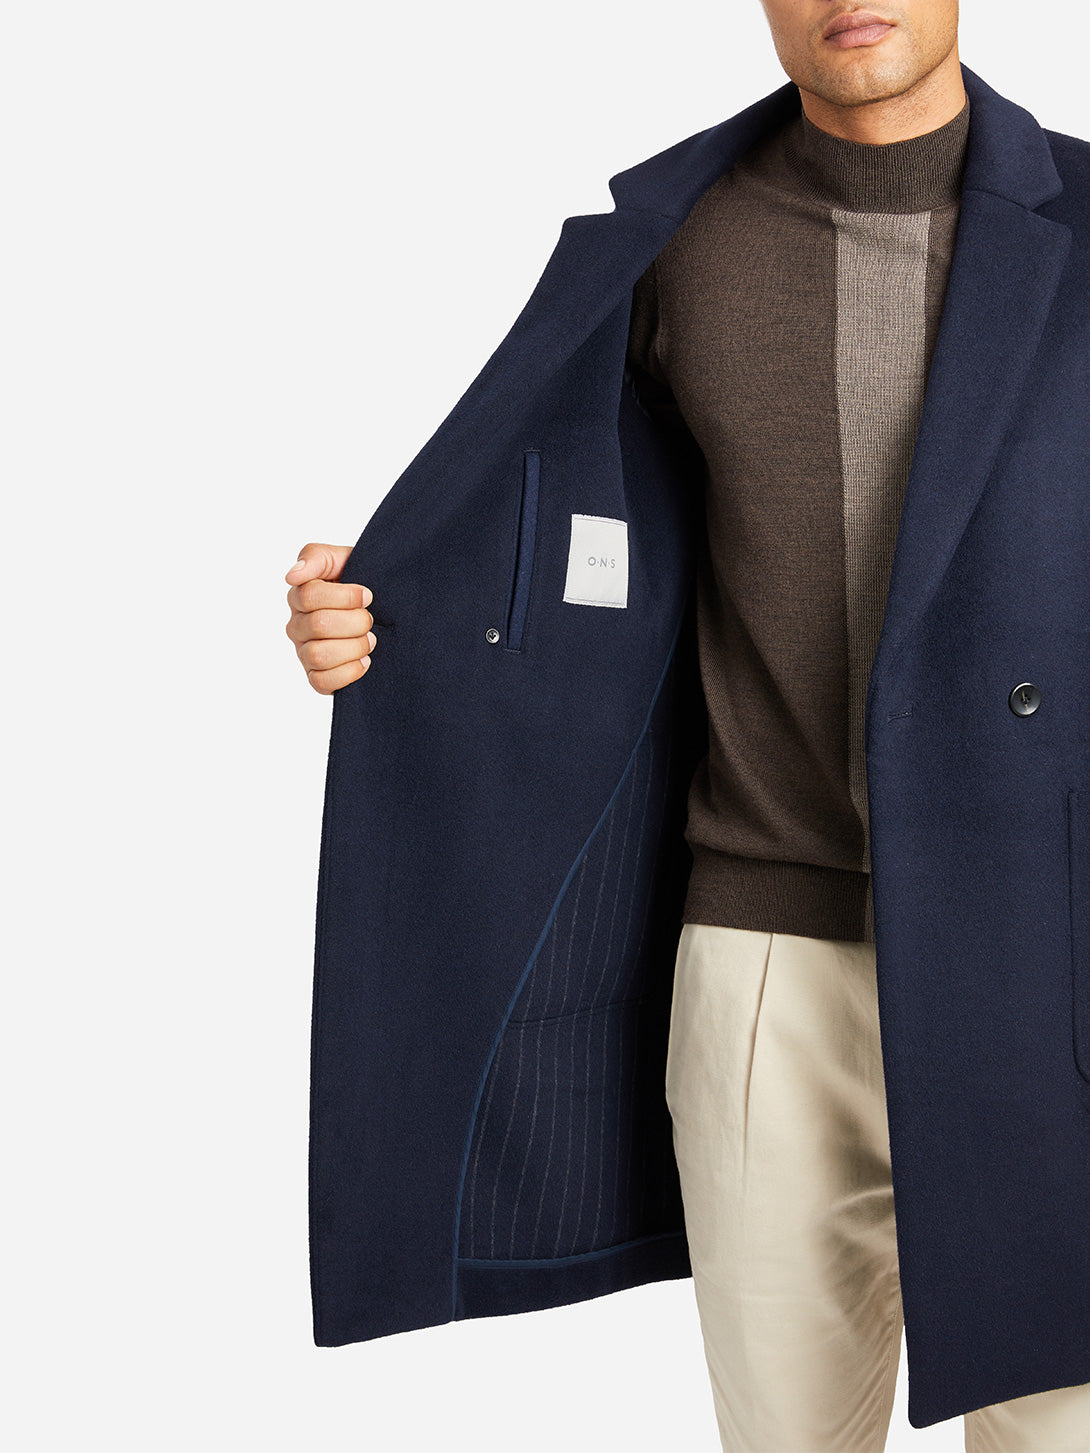 NAVY mens coats marco overcoat blue ons clothing